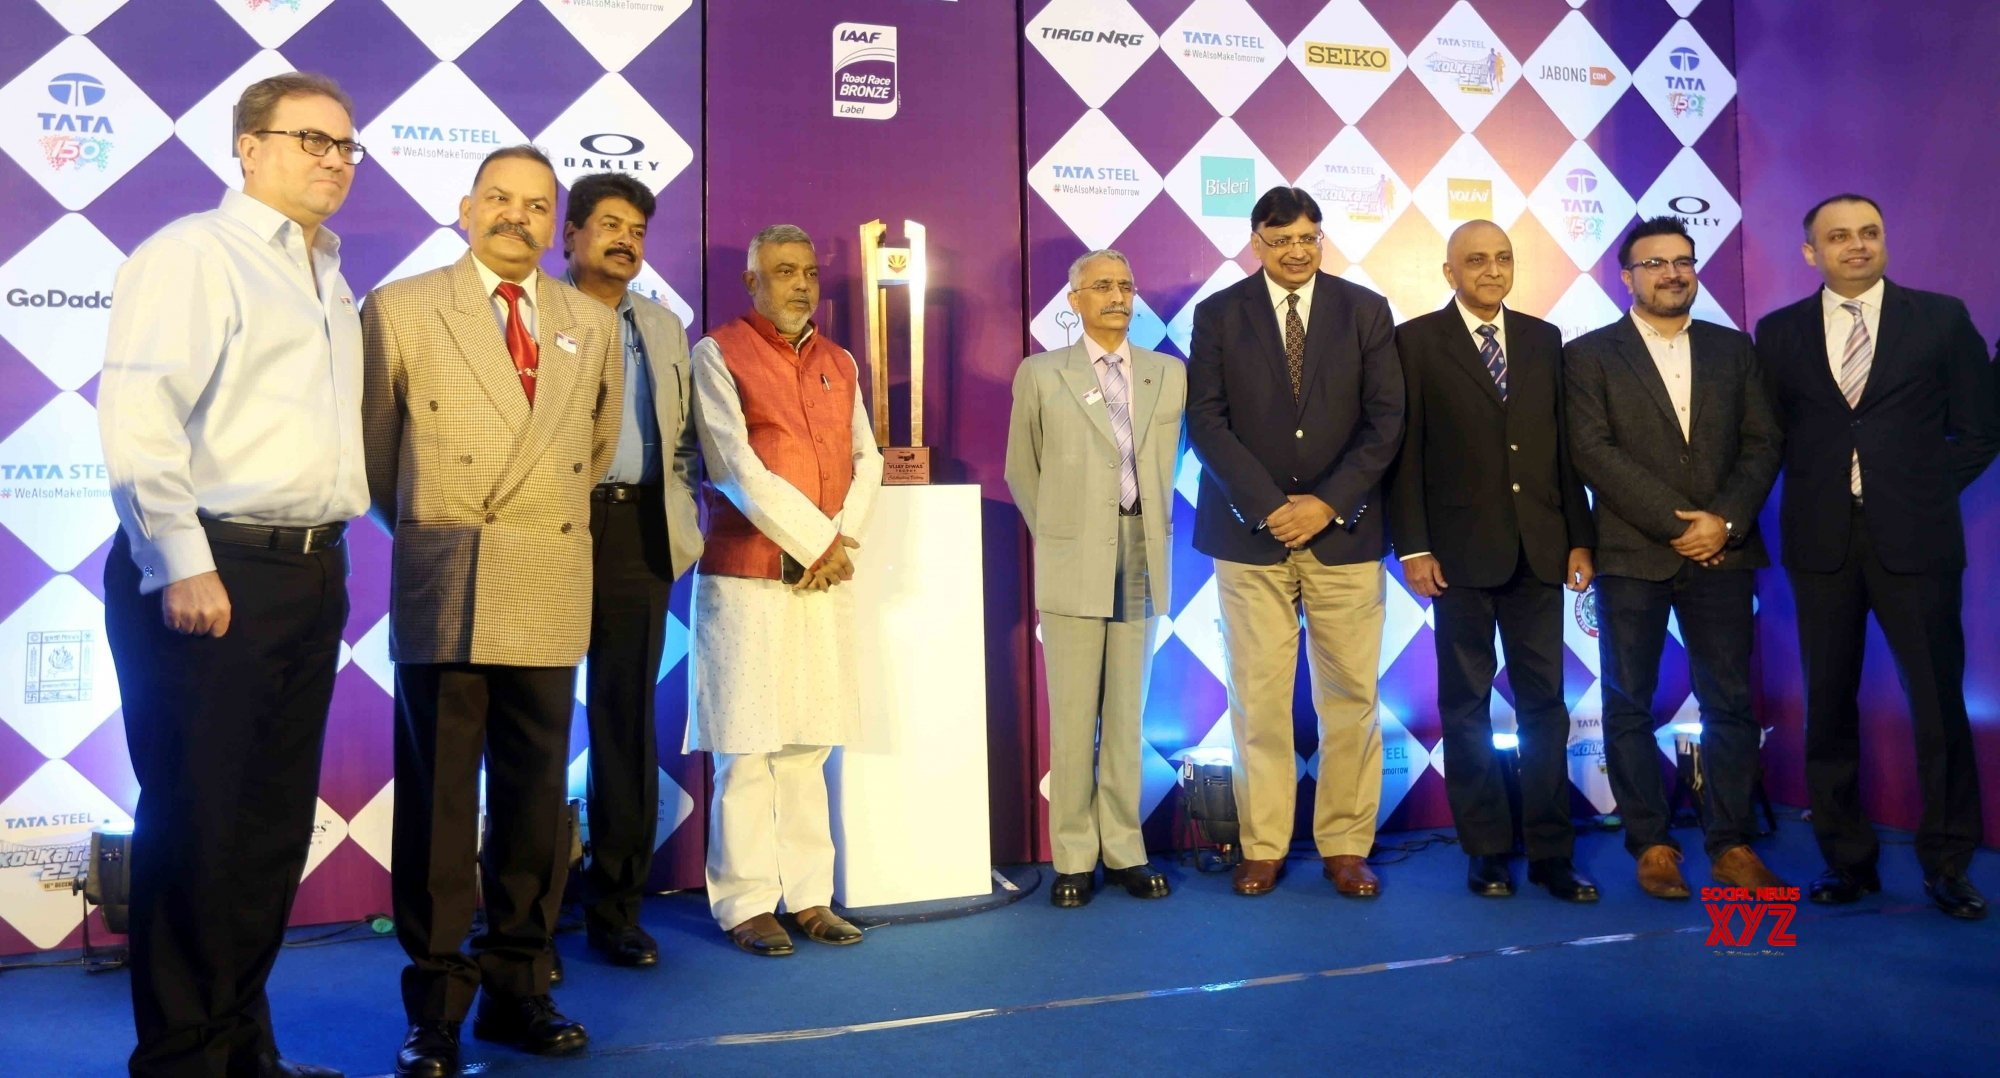 Defending champs Sable, Suriya to lead Indian charge in TSK 25K run